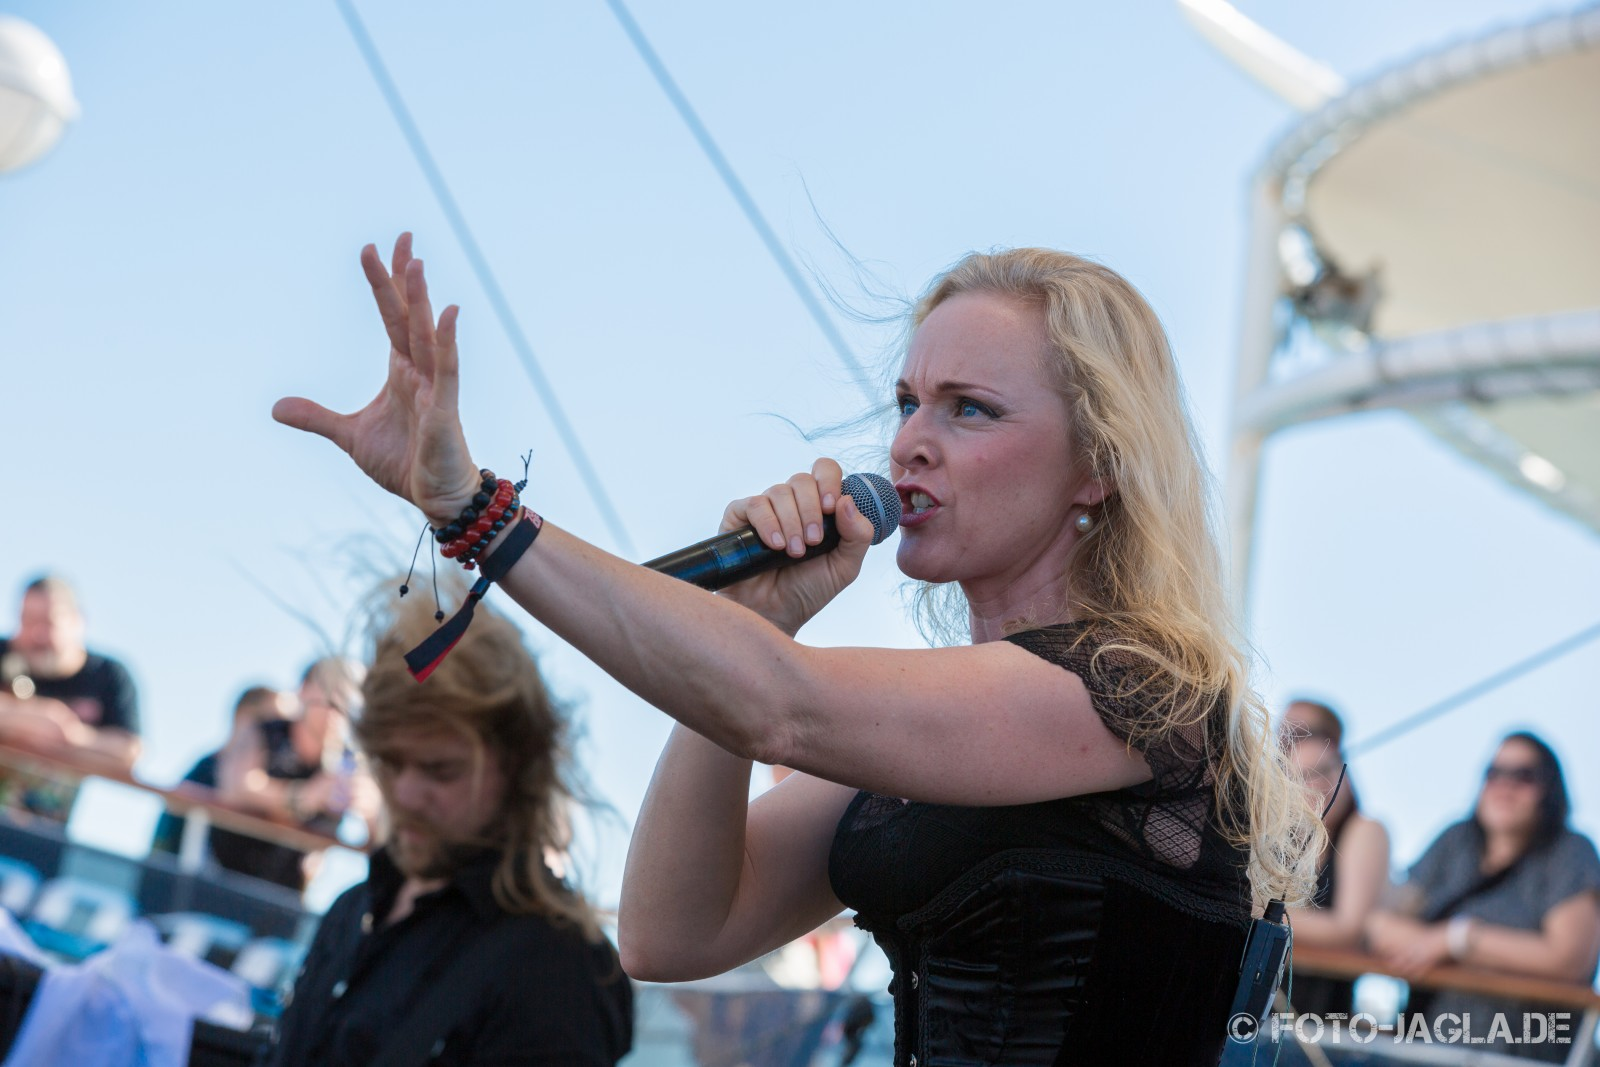 70000 Tons of Metal 2014 ::. Leaves' Eyes